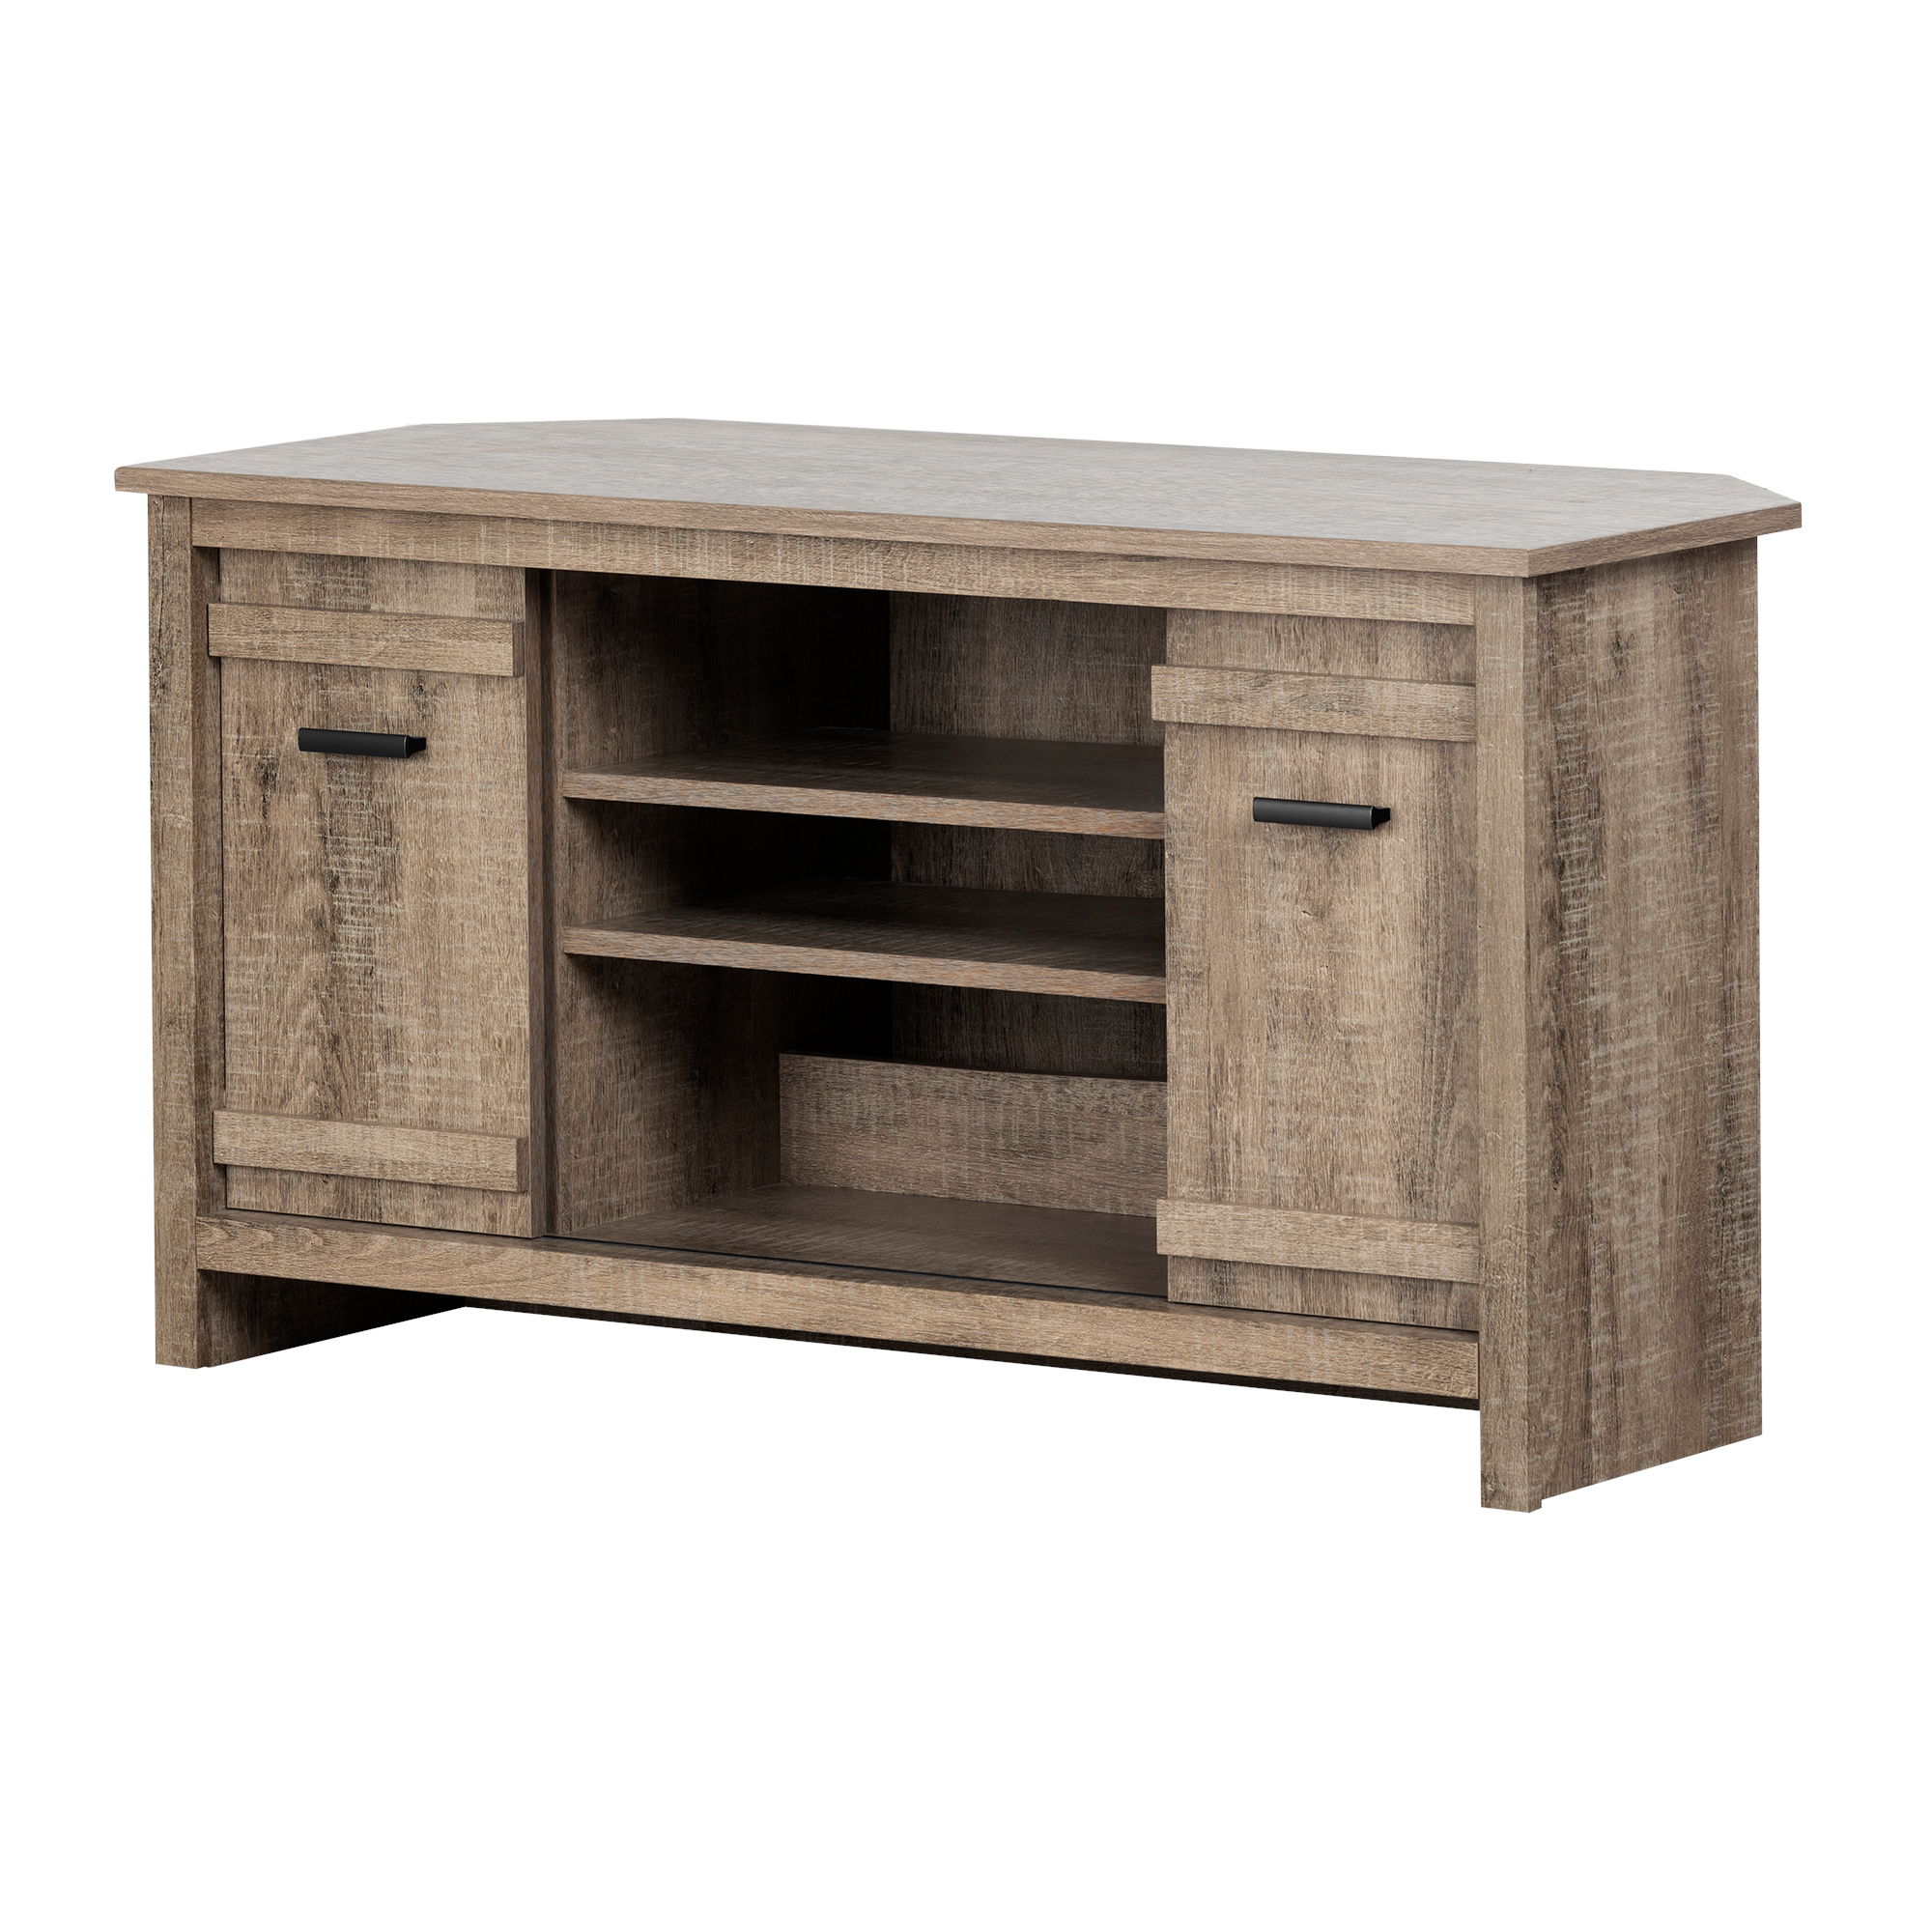 South Shore Exhibit Corner TV Stand, for TVs up to 42'', Multiple Finishes